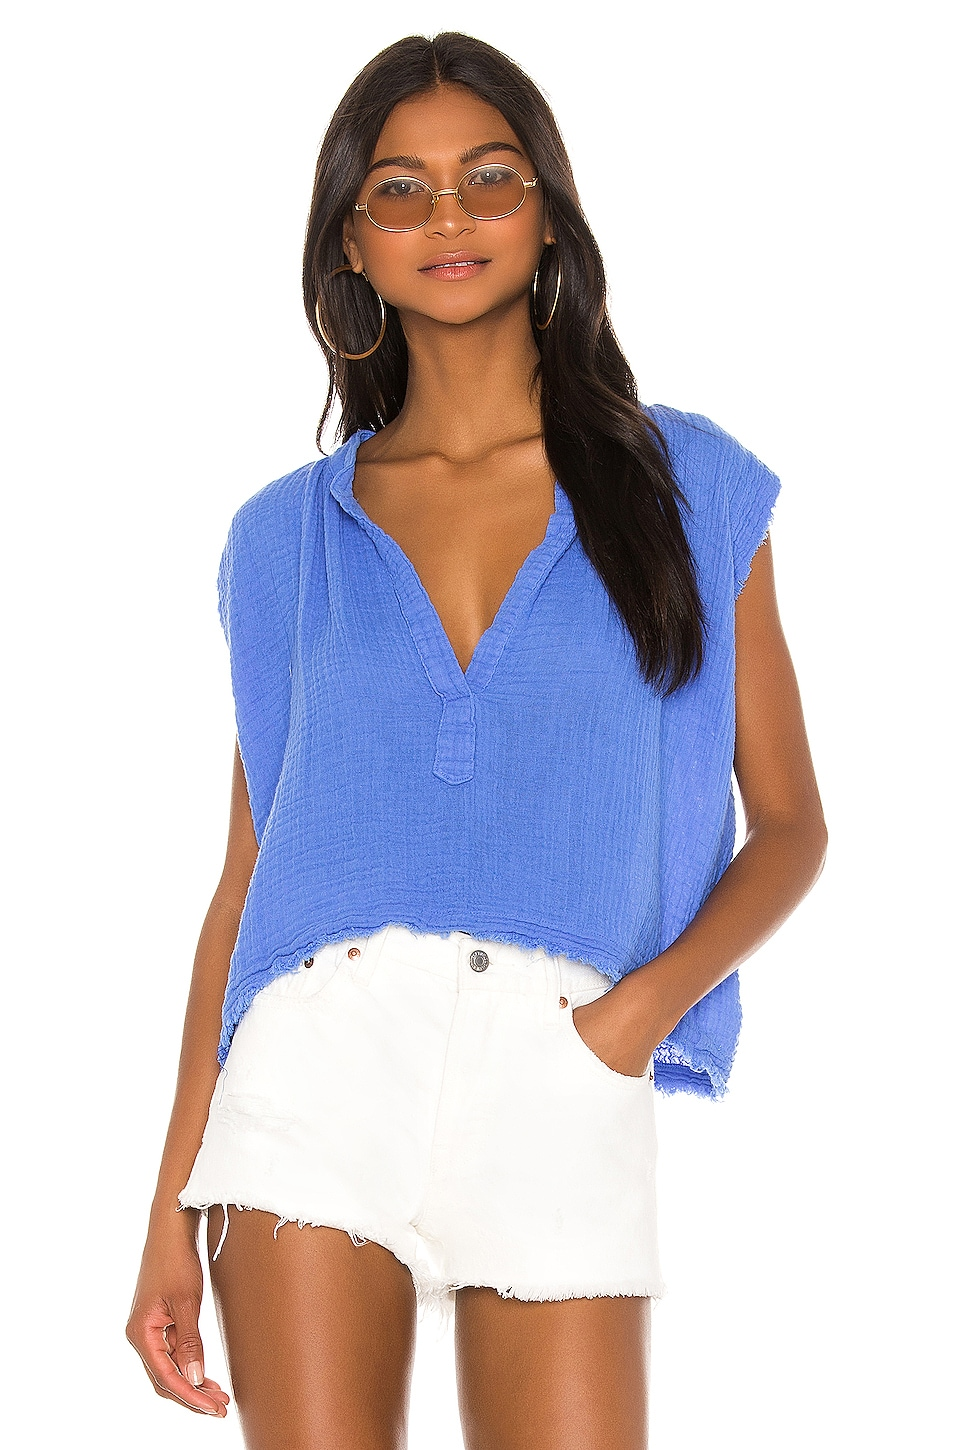 9 Seed Idyllwild Sleeveless Top in Moroccan Blue